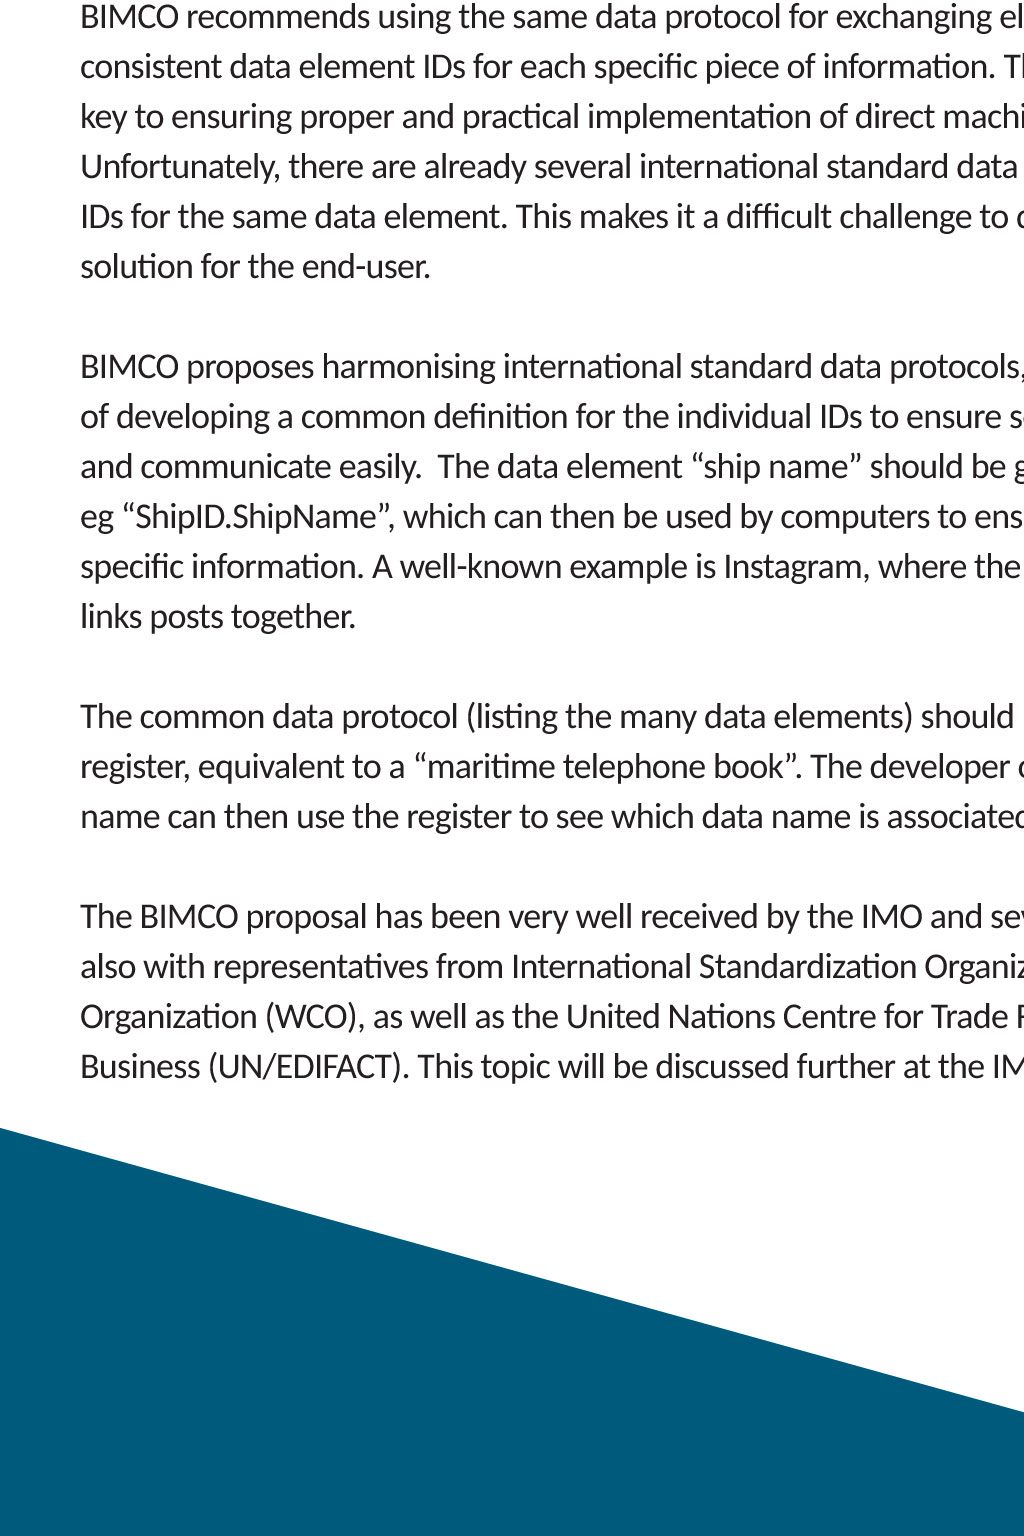 Standardisation - BIMCO Bulletin